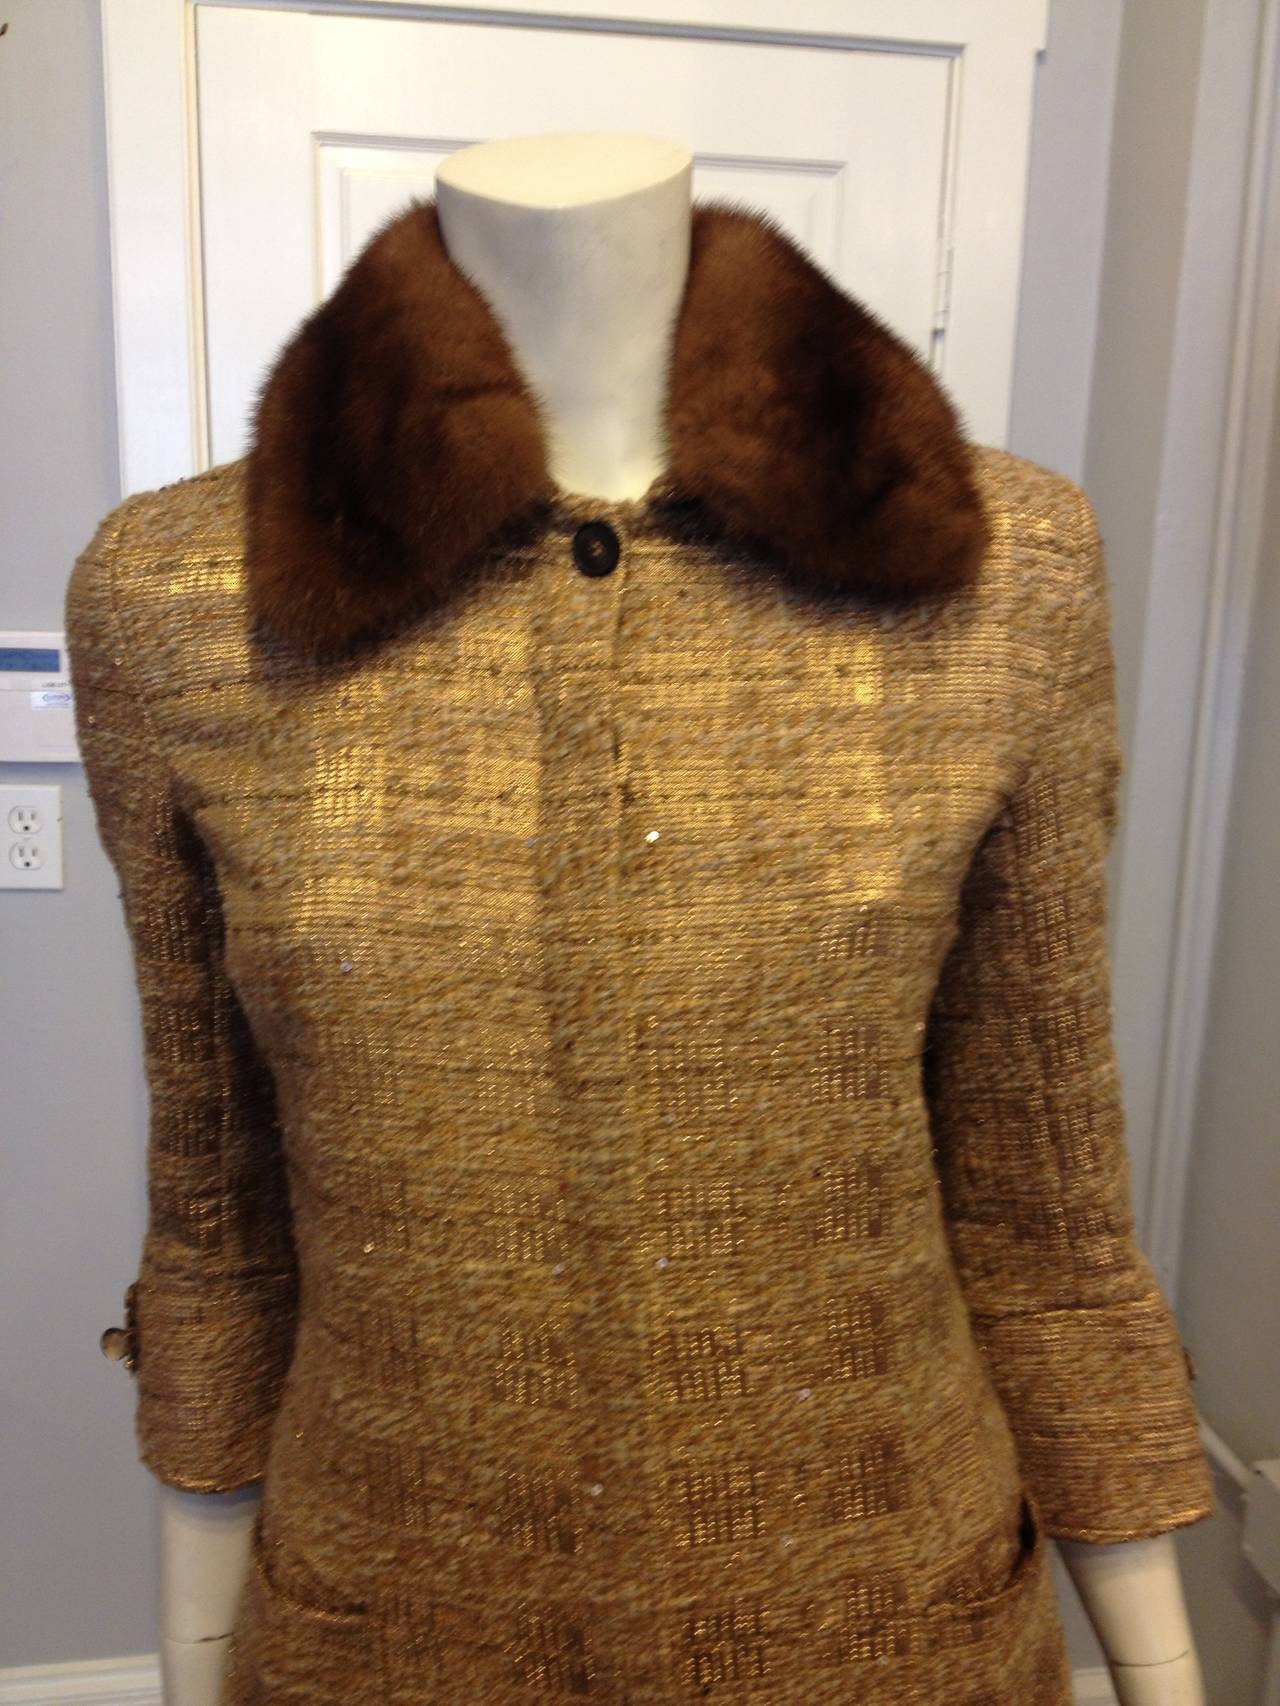 Regal and stately - this coat is sure to make an impact! The deep golden tone and the shimmering finish of the tweed are perfectly complemented by the mink collar and the clusters of amber-colored glass beads sewn onto each cuff. Perfect for the